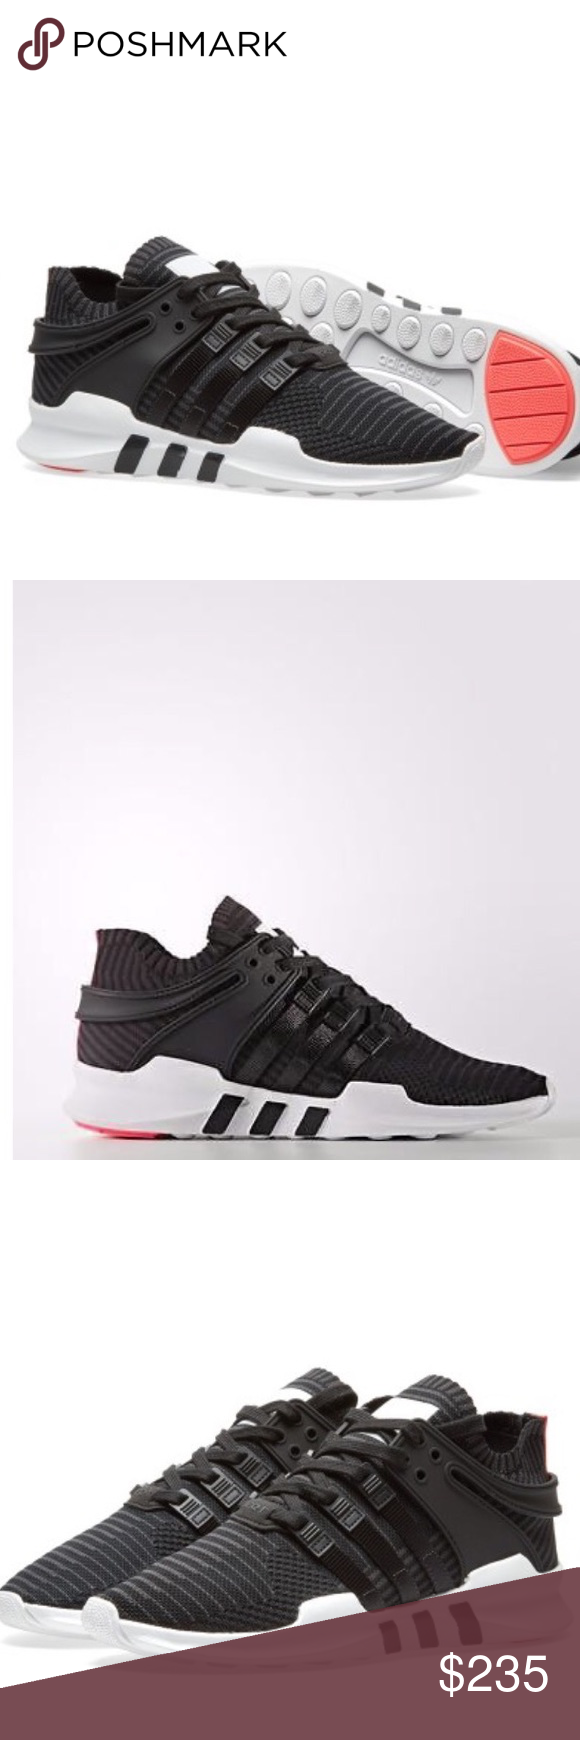 65aa4a15eb05 Adidas EQT Support ADV PK Turbo Red BB1260 Limited release Adidas EQT  Support ADV PK Turbo Red BB1260 Primeknit . Brand new with tag . Never been  worn .